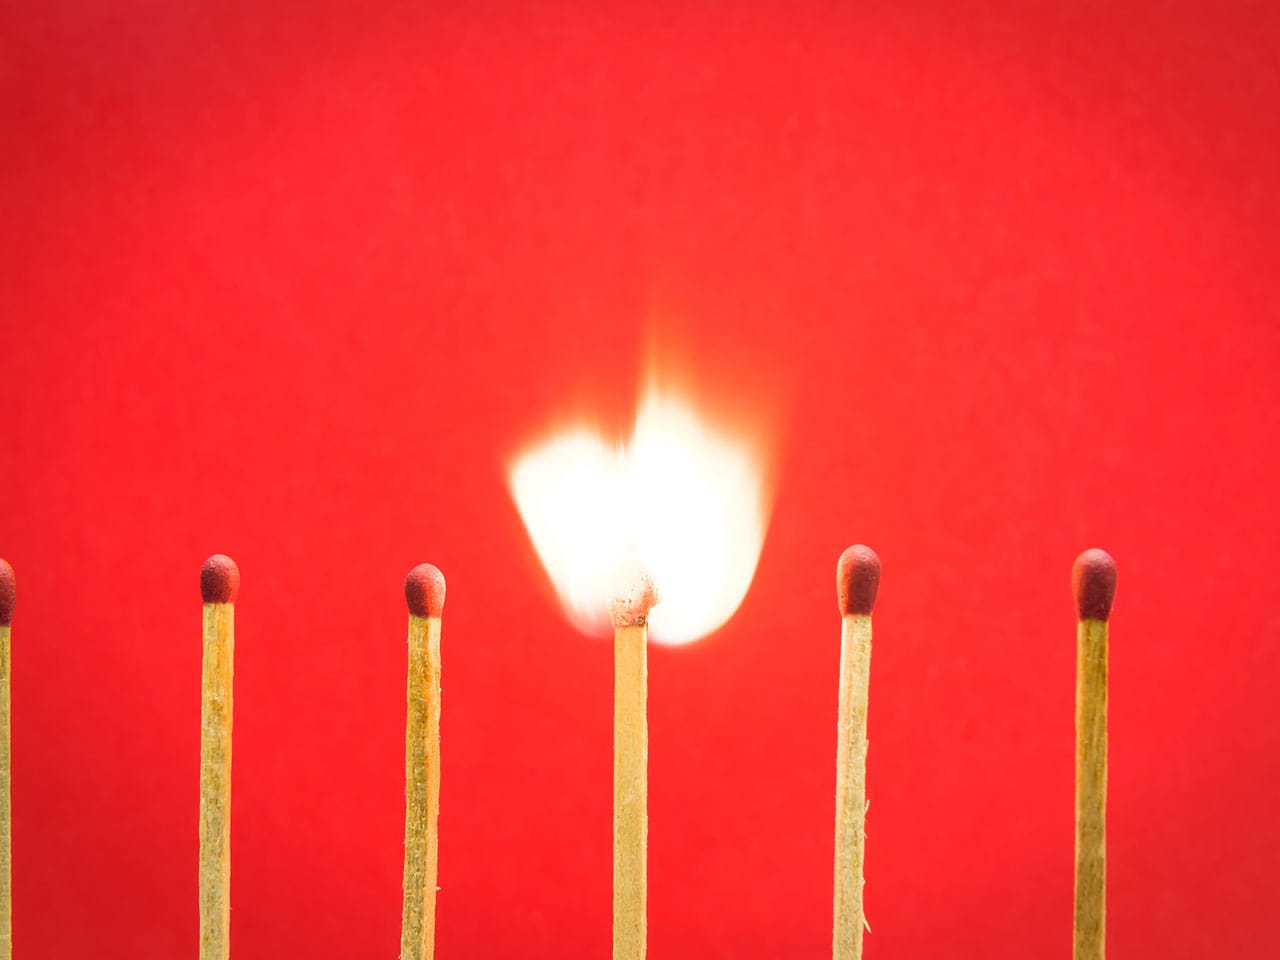 Burning match against red background referring to inflamed pain